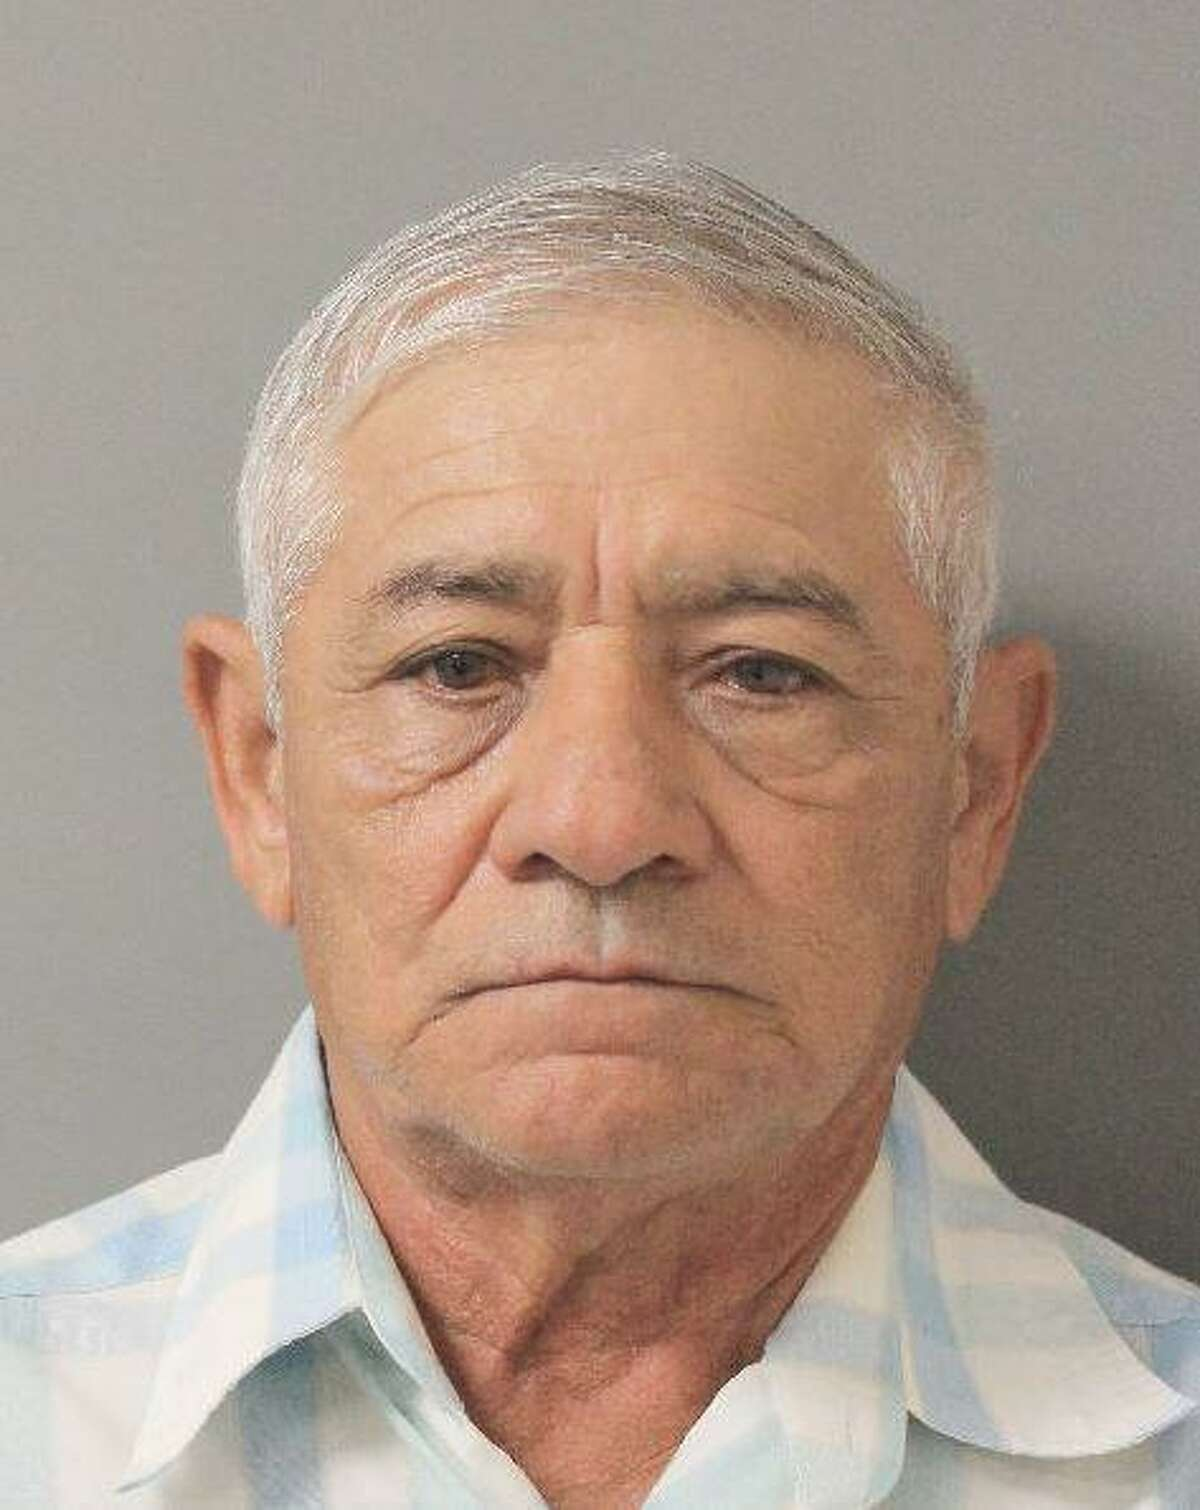 Rogelio Alberto Guardado, 72, pleaded guilty to aggravated assault of a family member causing serious bodily injury.